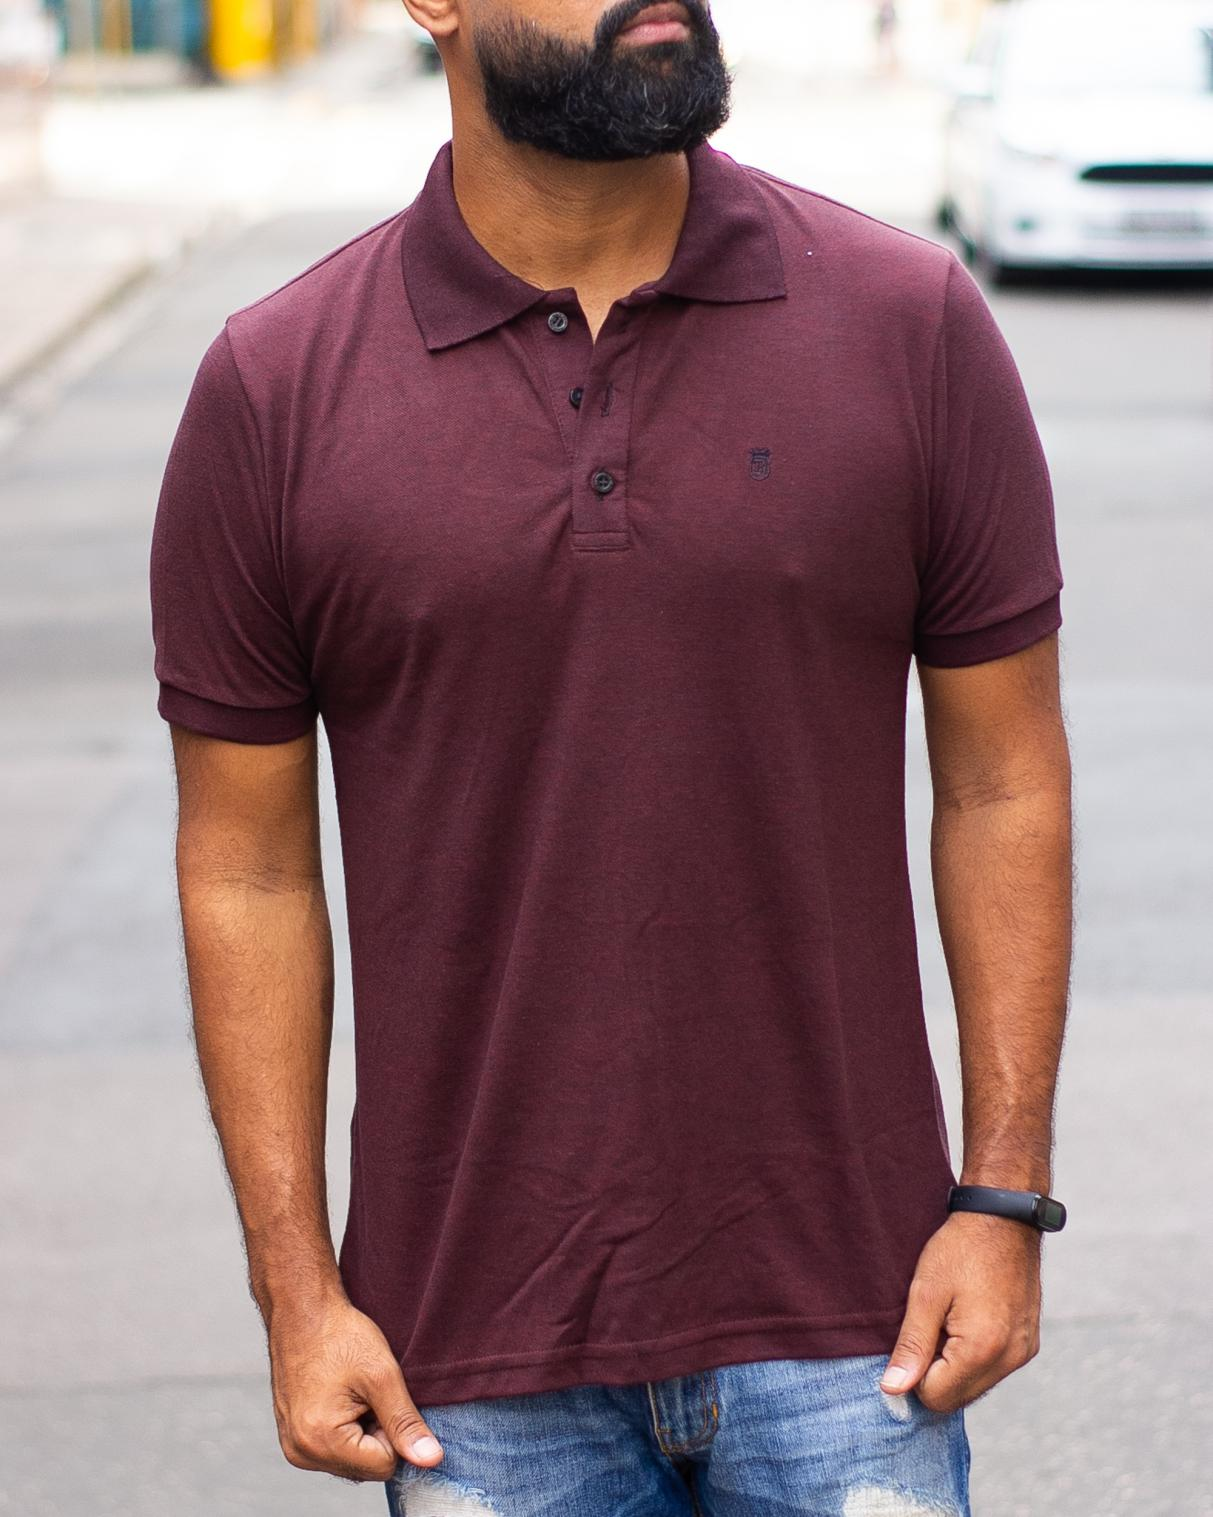 CAMISA POLO BLACK WEST BASIC TWISTER PTO/BORDO